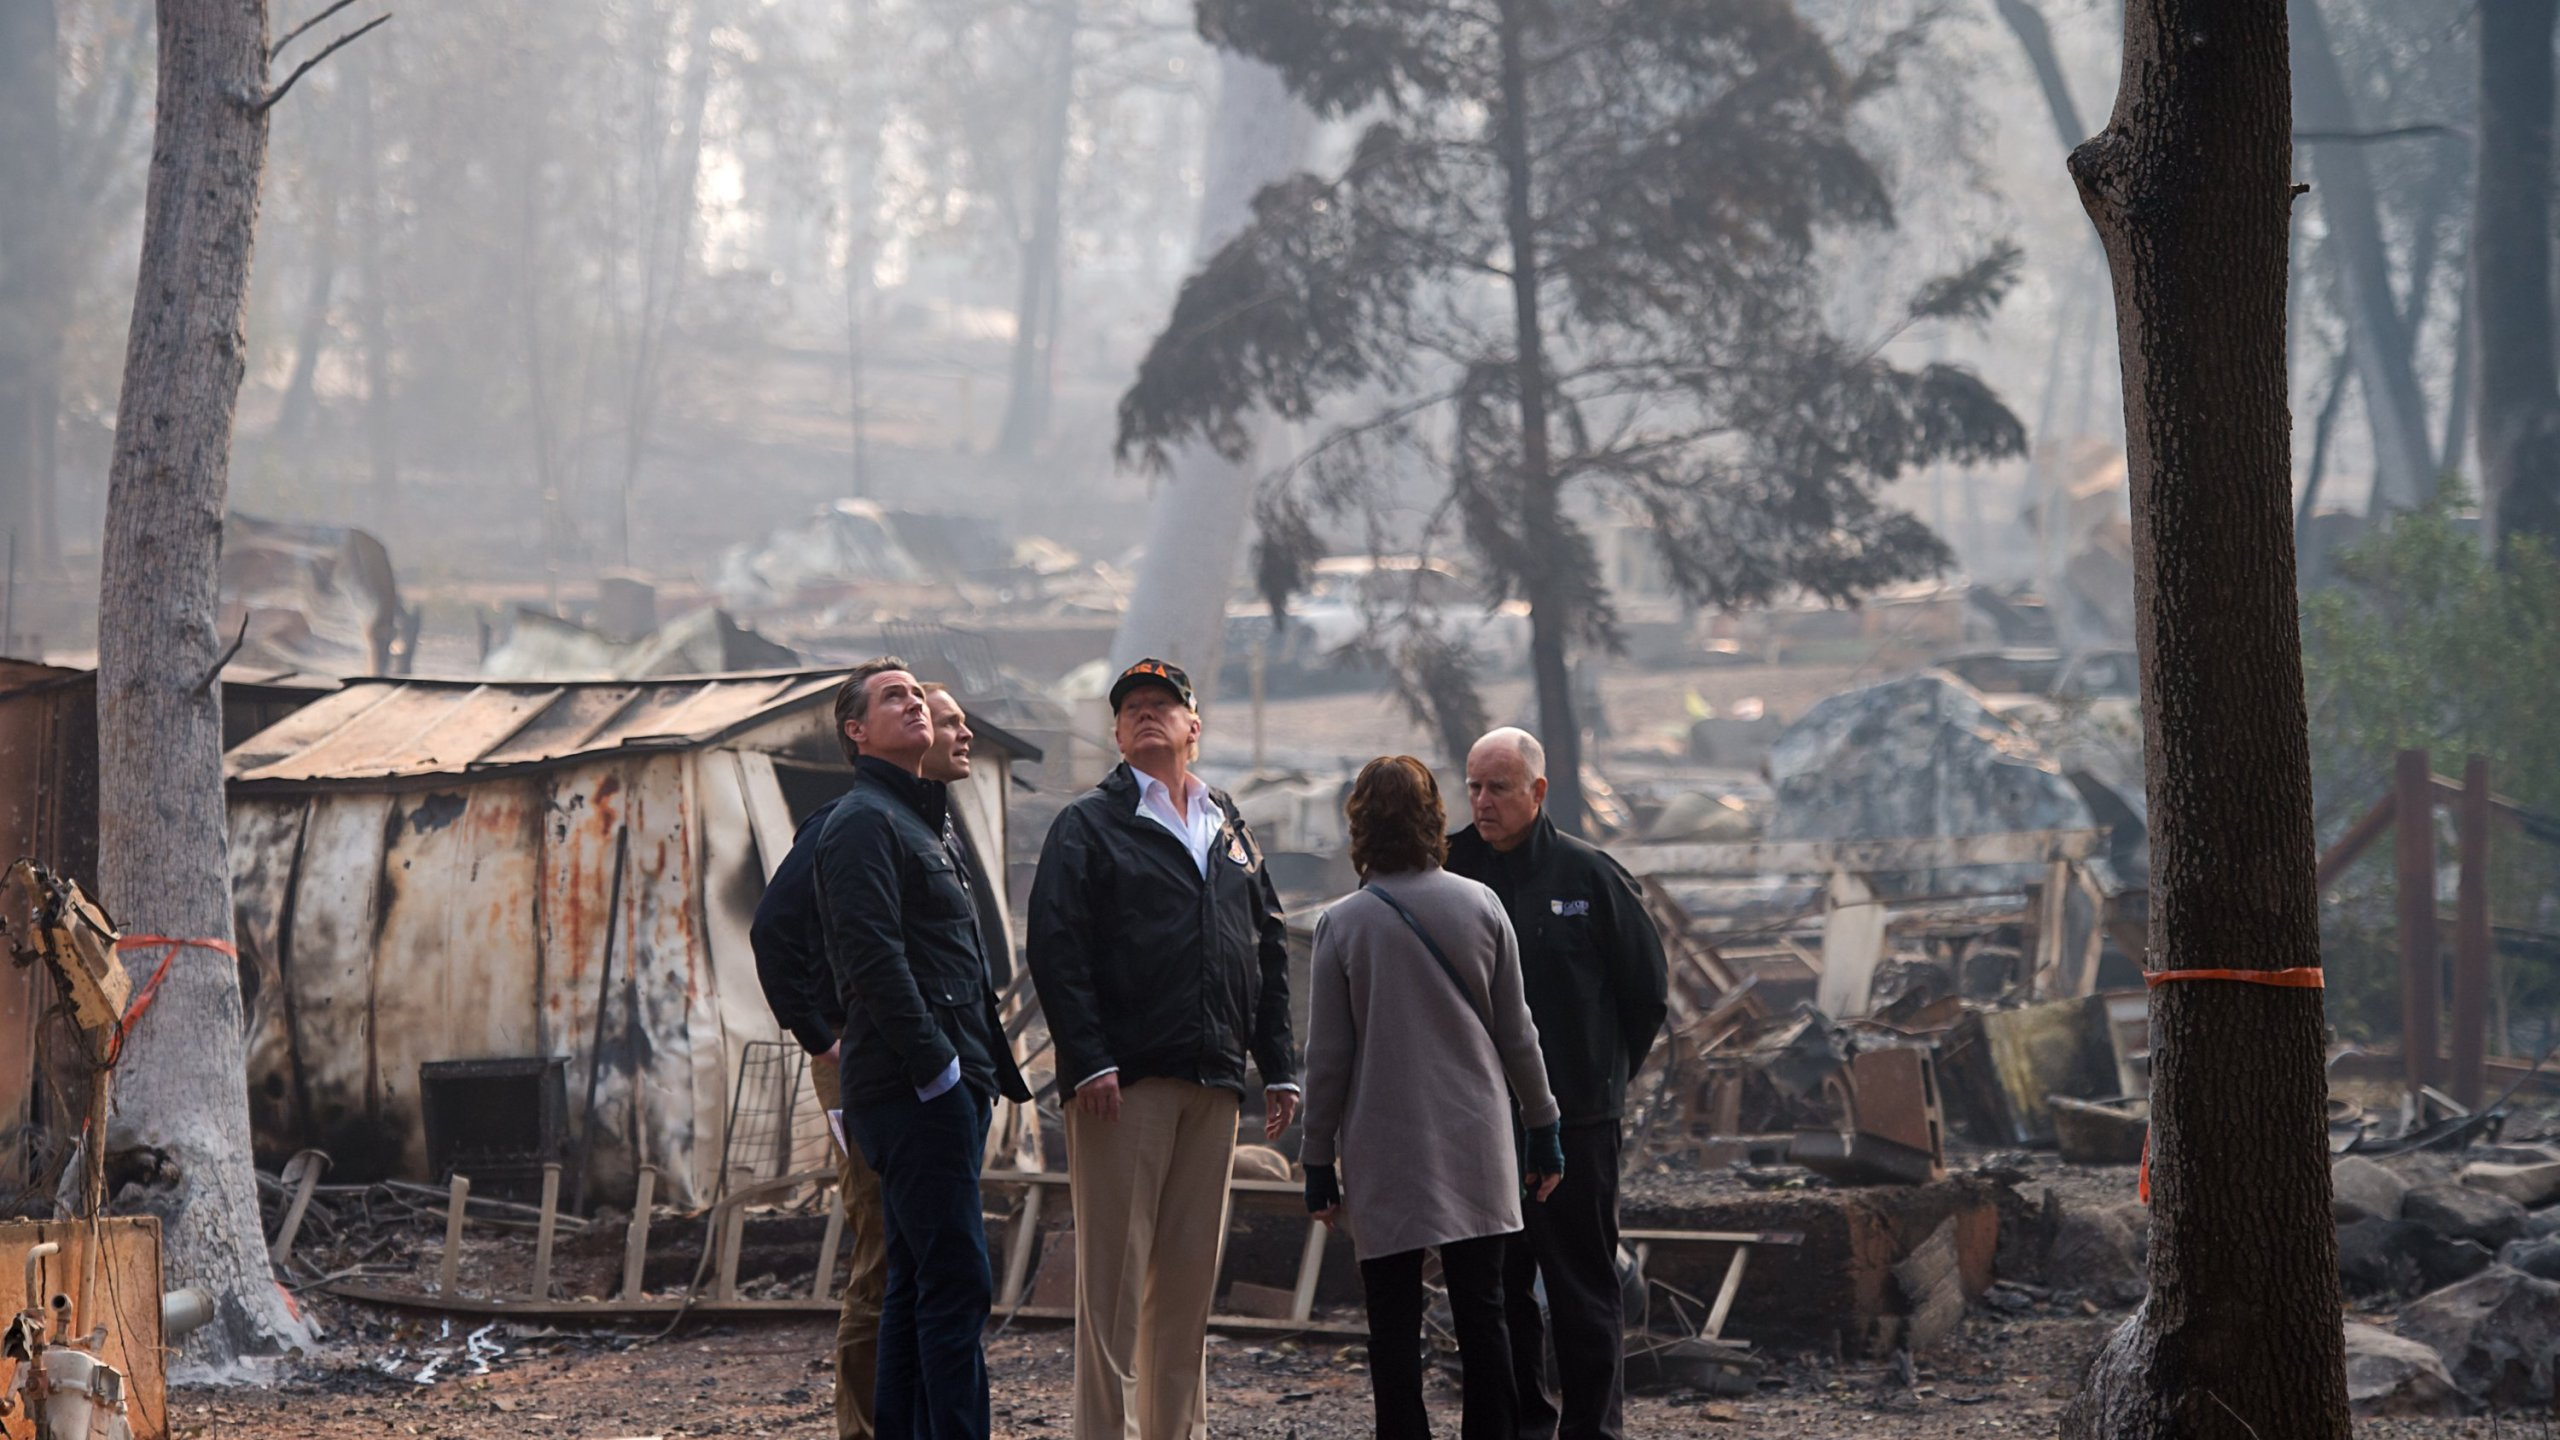 Gavin Newson, FEMA Director Brock Long, Donald Trump, Paradise mayor Jody Jones and Gov. Jerry Brown tour the Skyway Villa Mobile Home and RV Park, during Trump's visit of the Camp Fire in Paradise on Nov. 17, 2018. (Getty: Paul Kitagaki Jr.-Pool/Getty Images)